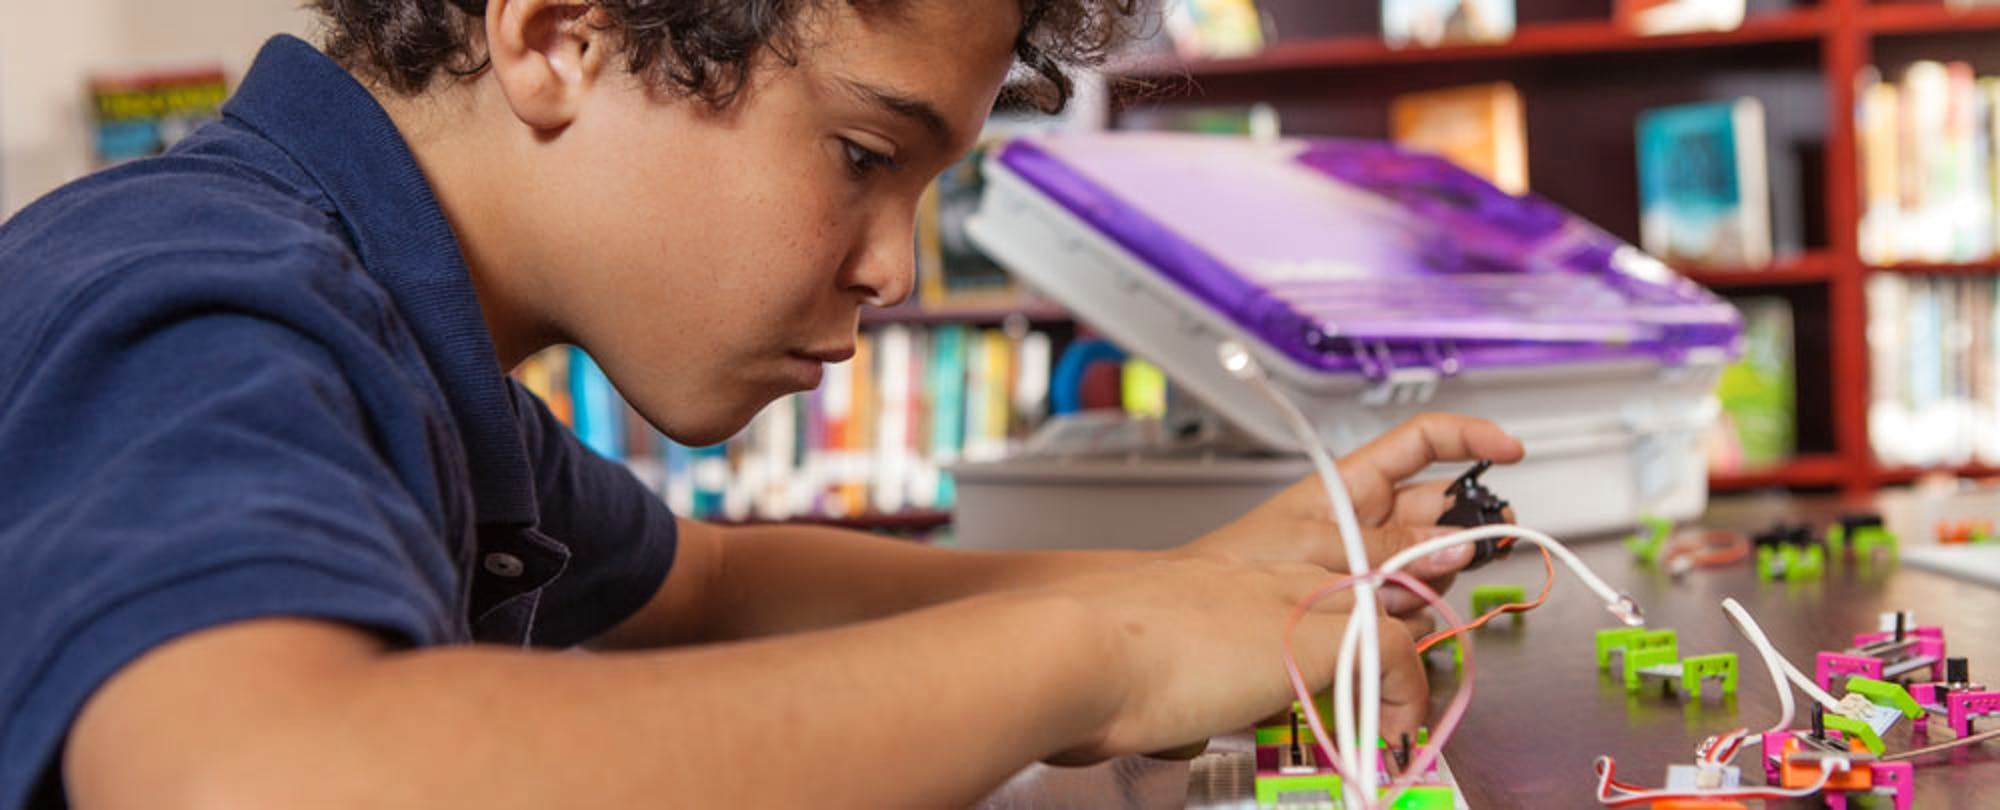 Building Connections Between Maker Ed and Standards